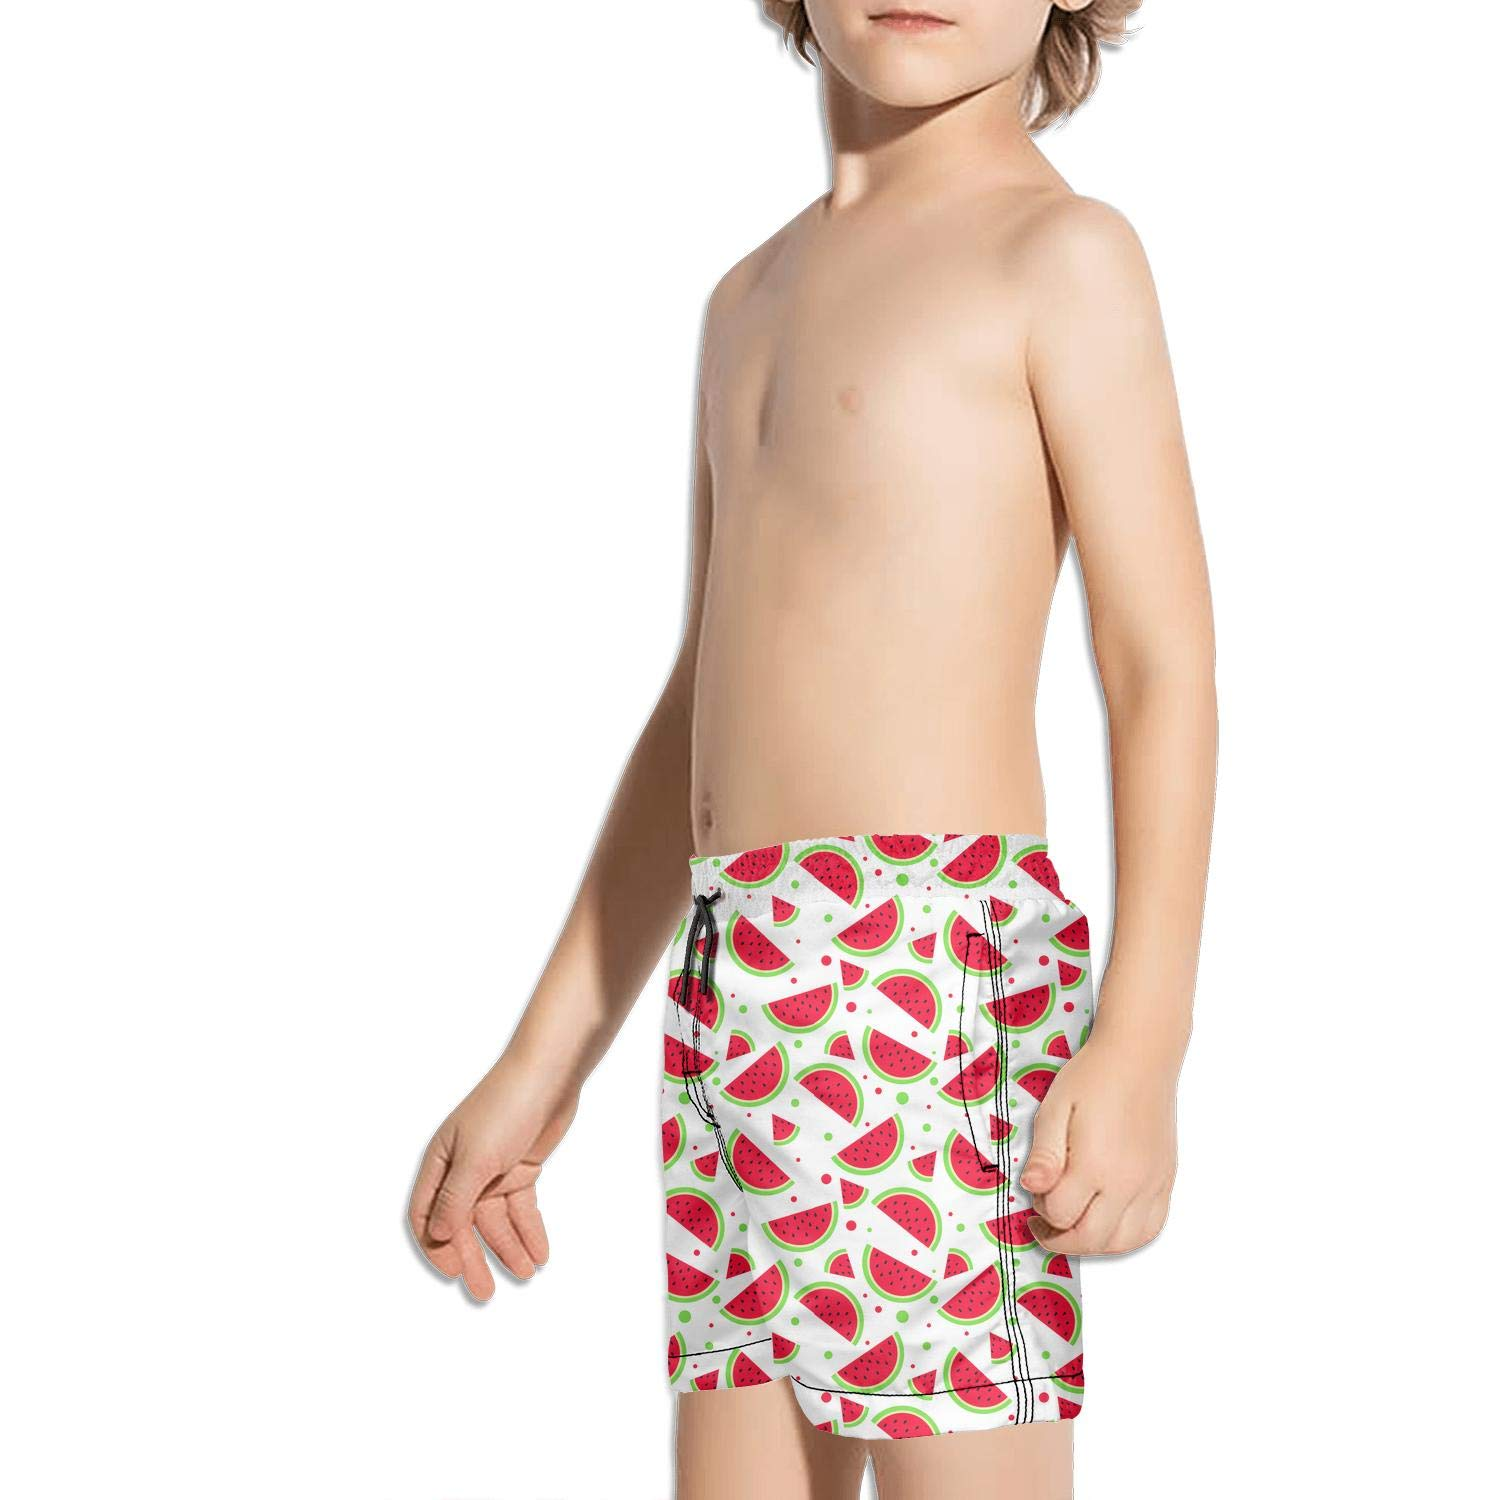 Kids Watermelon Slices Fruit Swimming Trunks Running Activewear Quick-Dry Boardshorts